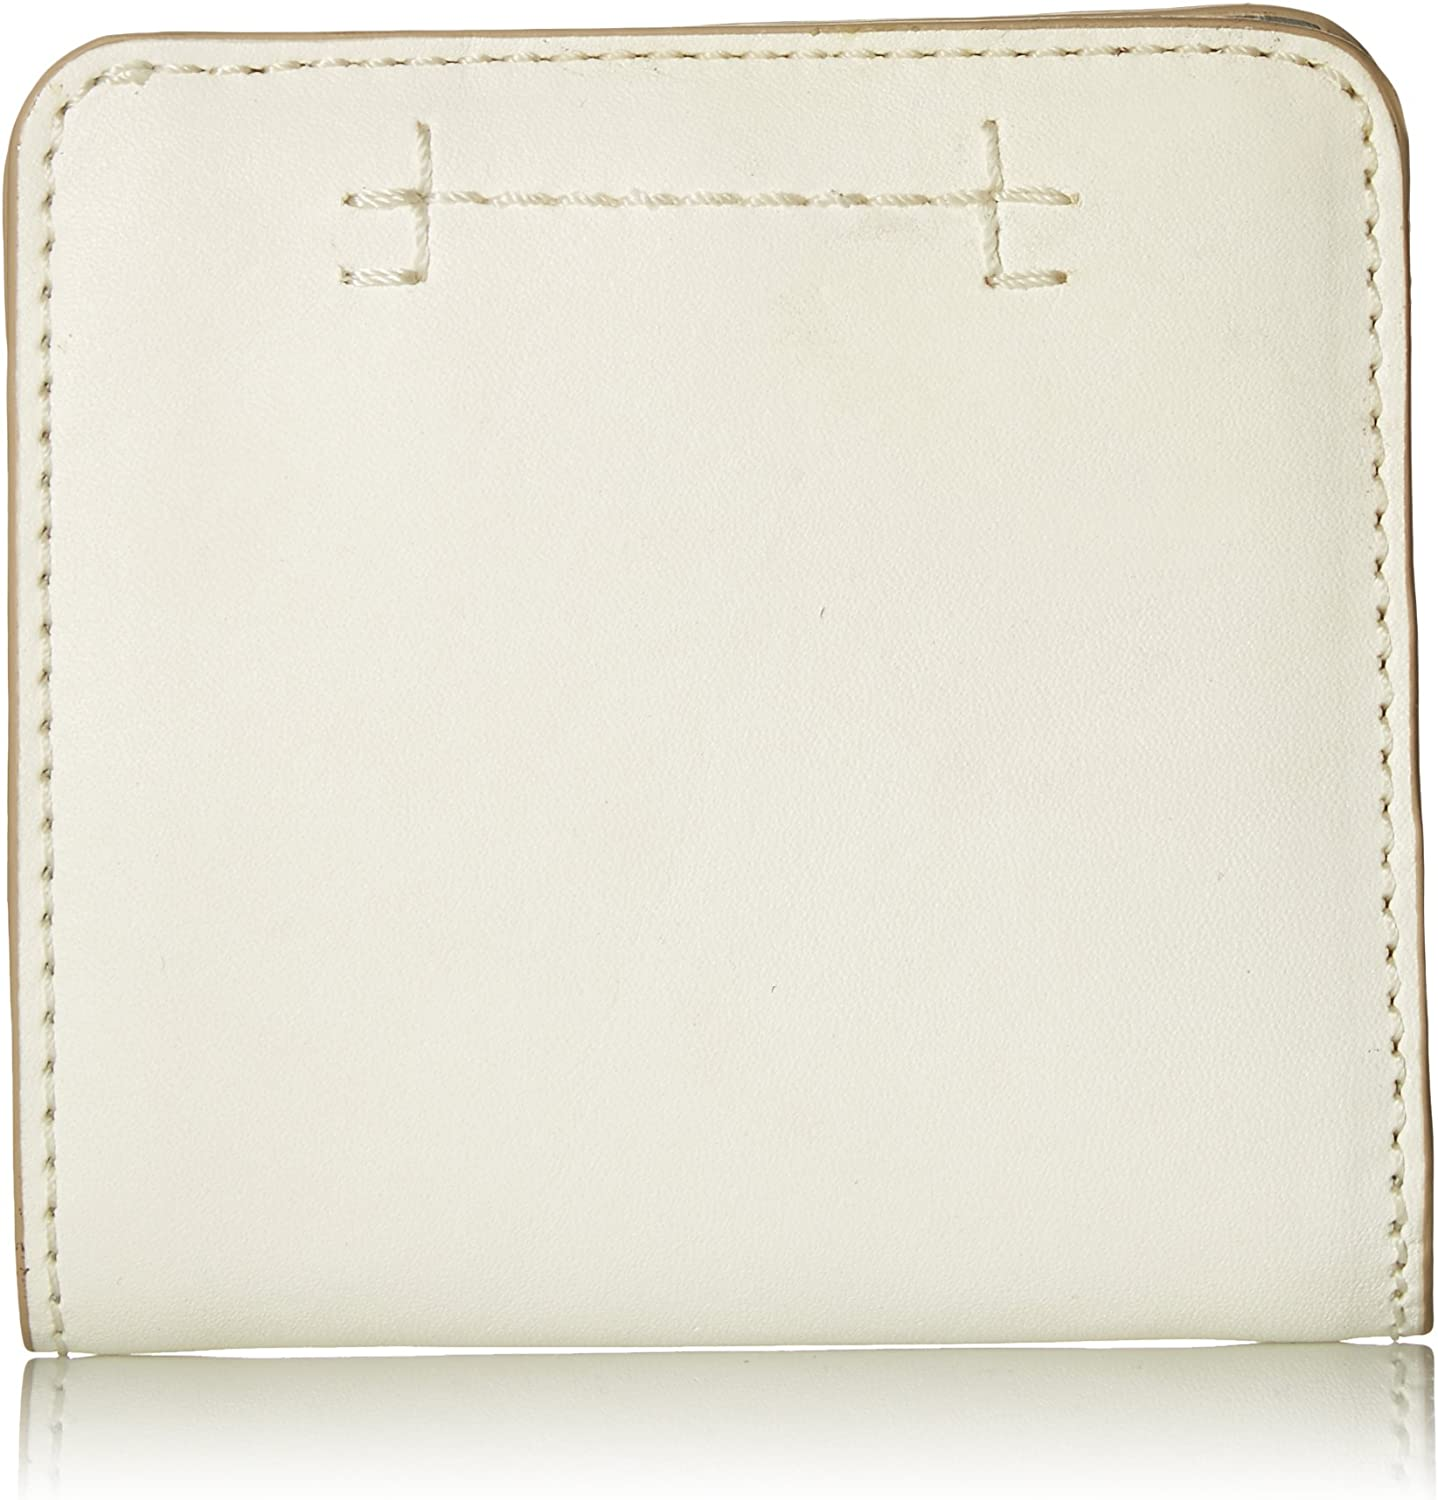 FRYE Women's Carson Small Snap Leather Wallet, White, One Size